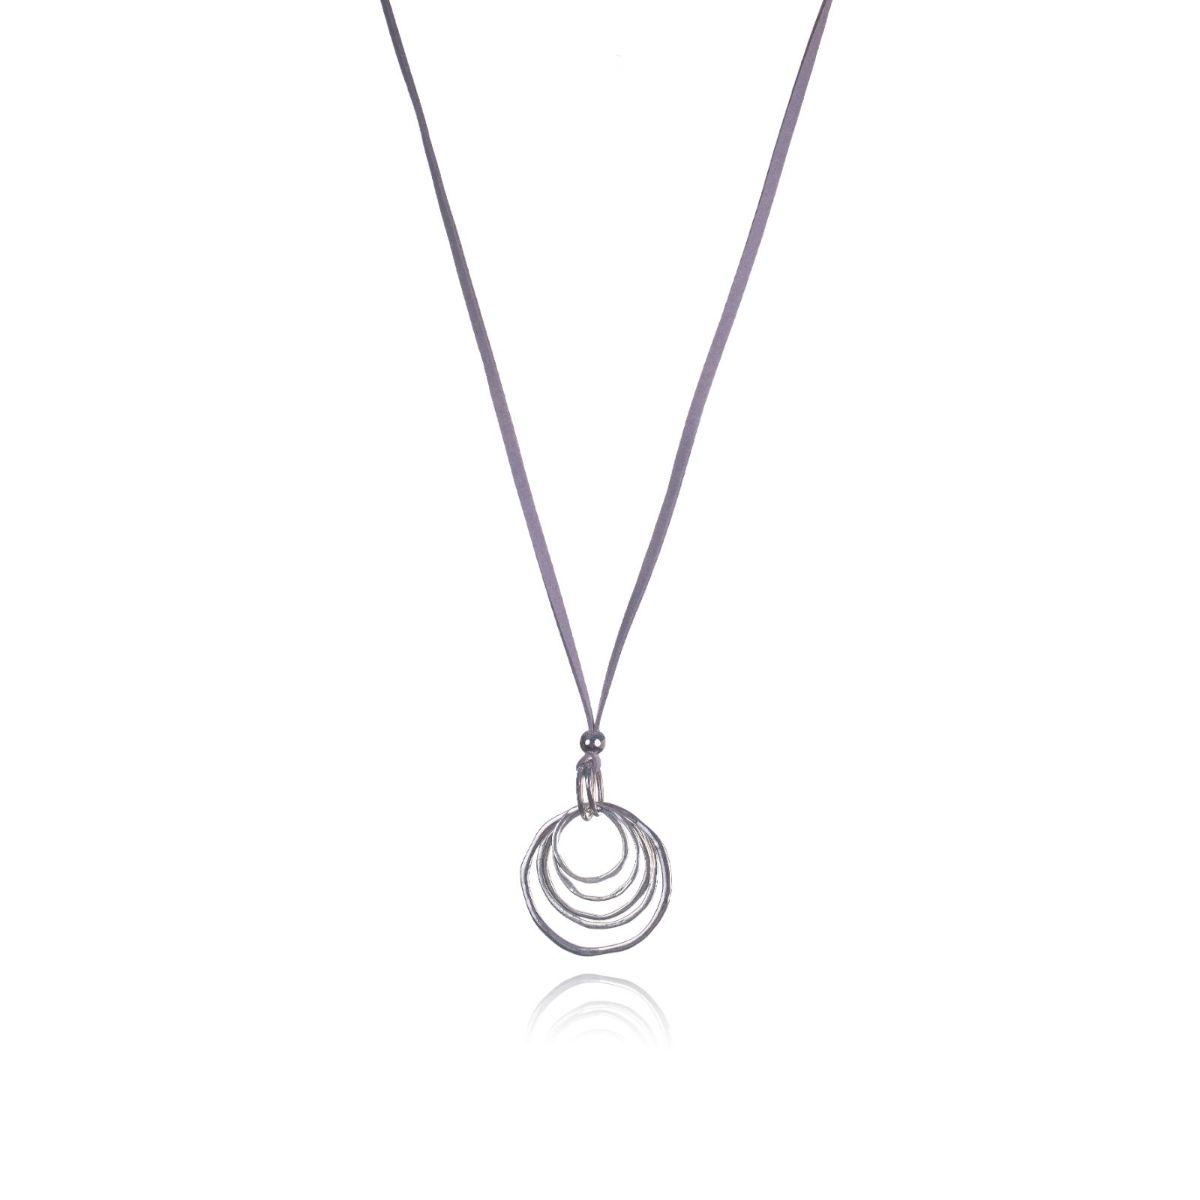 Ophelia long brown suede necklace with pendant of several silver-plated metallic circles